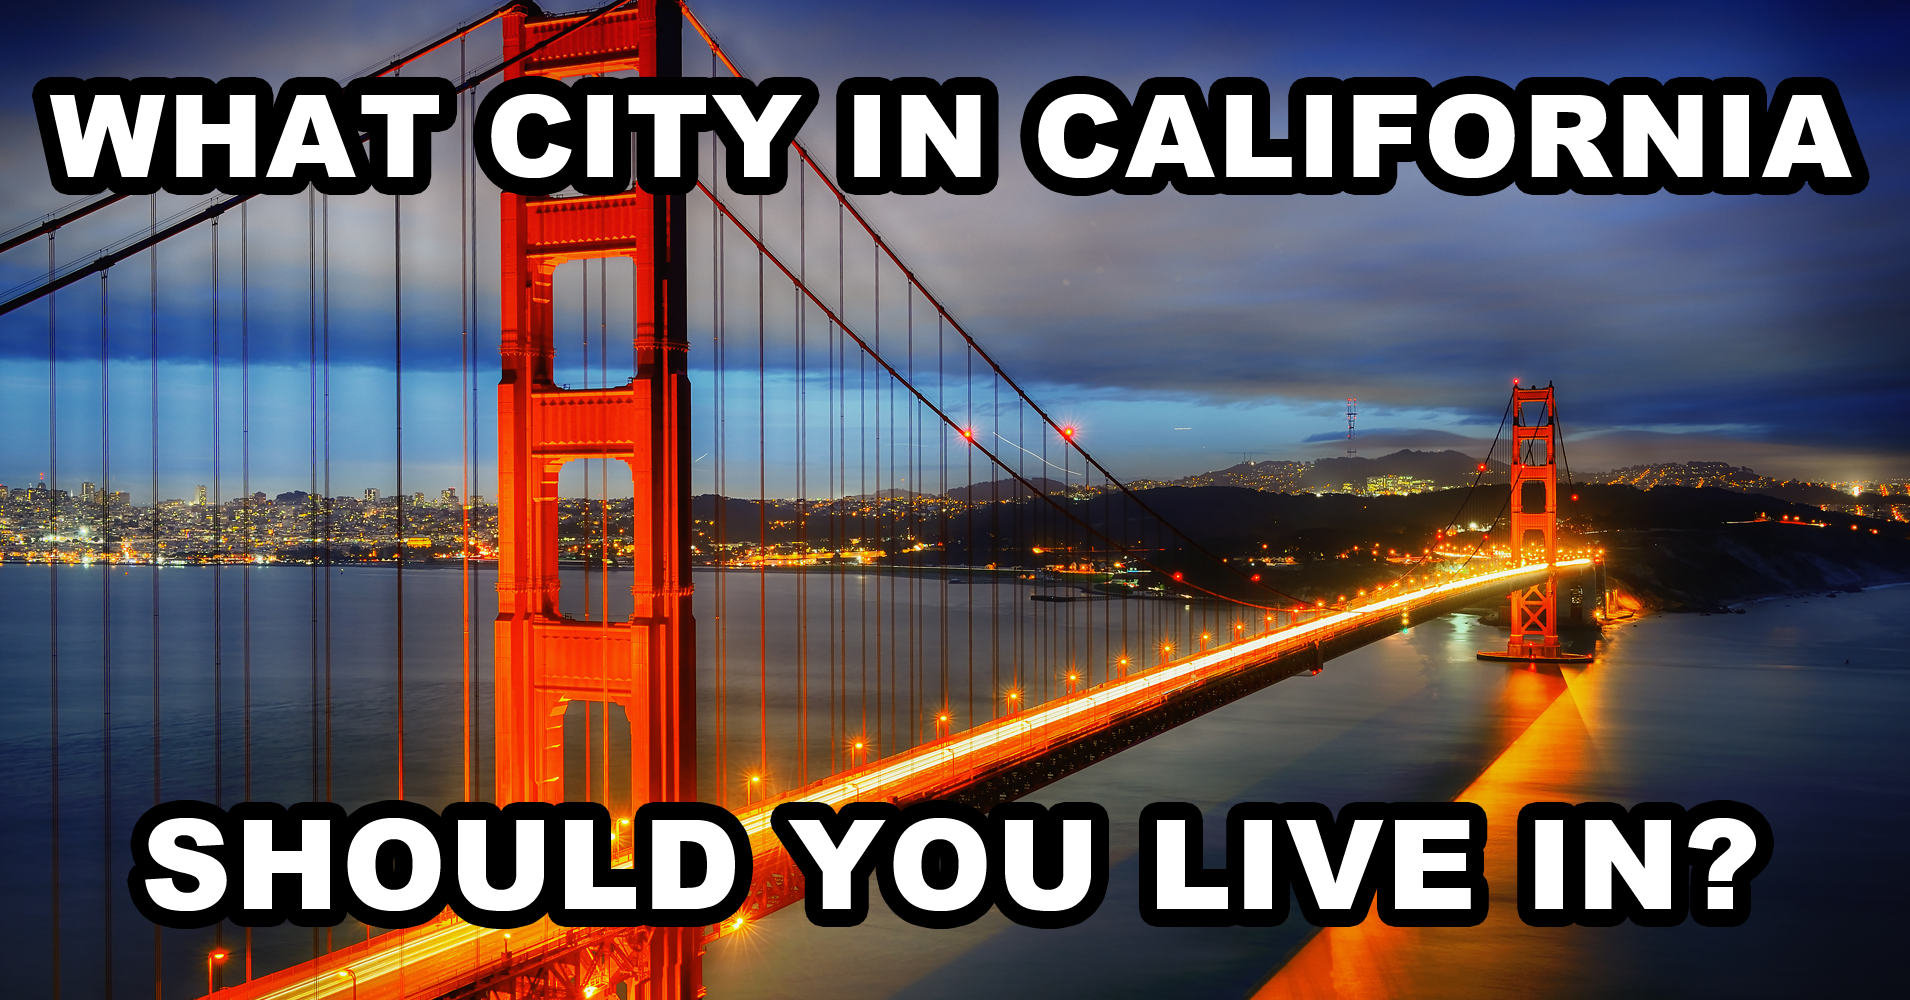 What city in california should you live in question 1 for To do in california